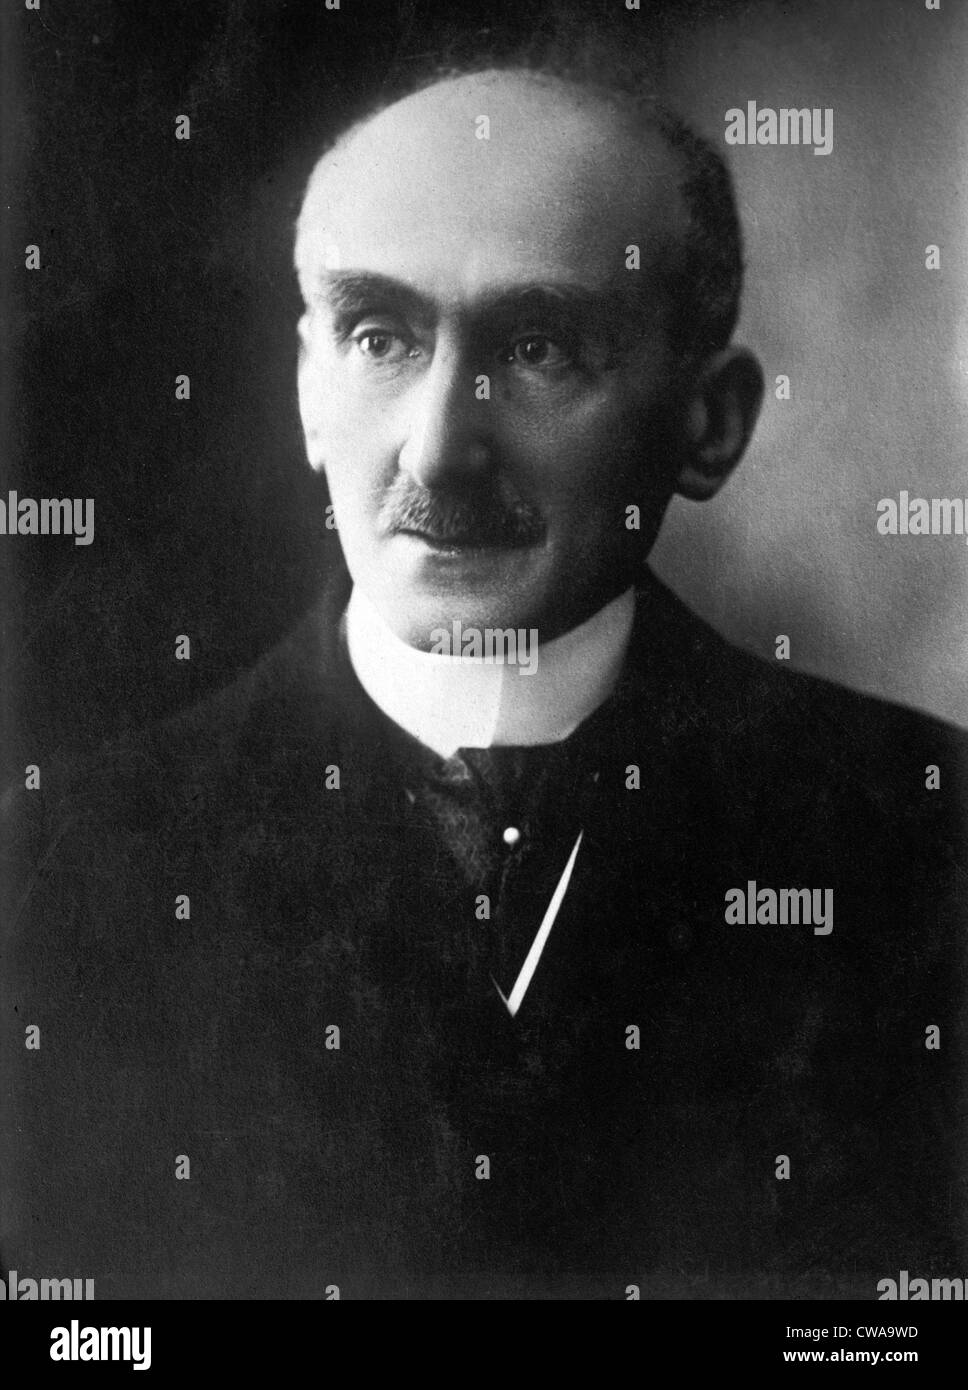 Henri Bergson, (1859-1941) French philosopher who won the Nobel Prize for Literature in 1927. 1925 photo by Henri - Stock Image